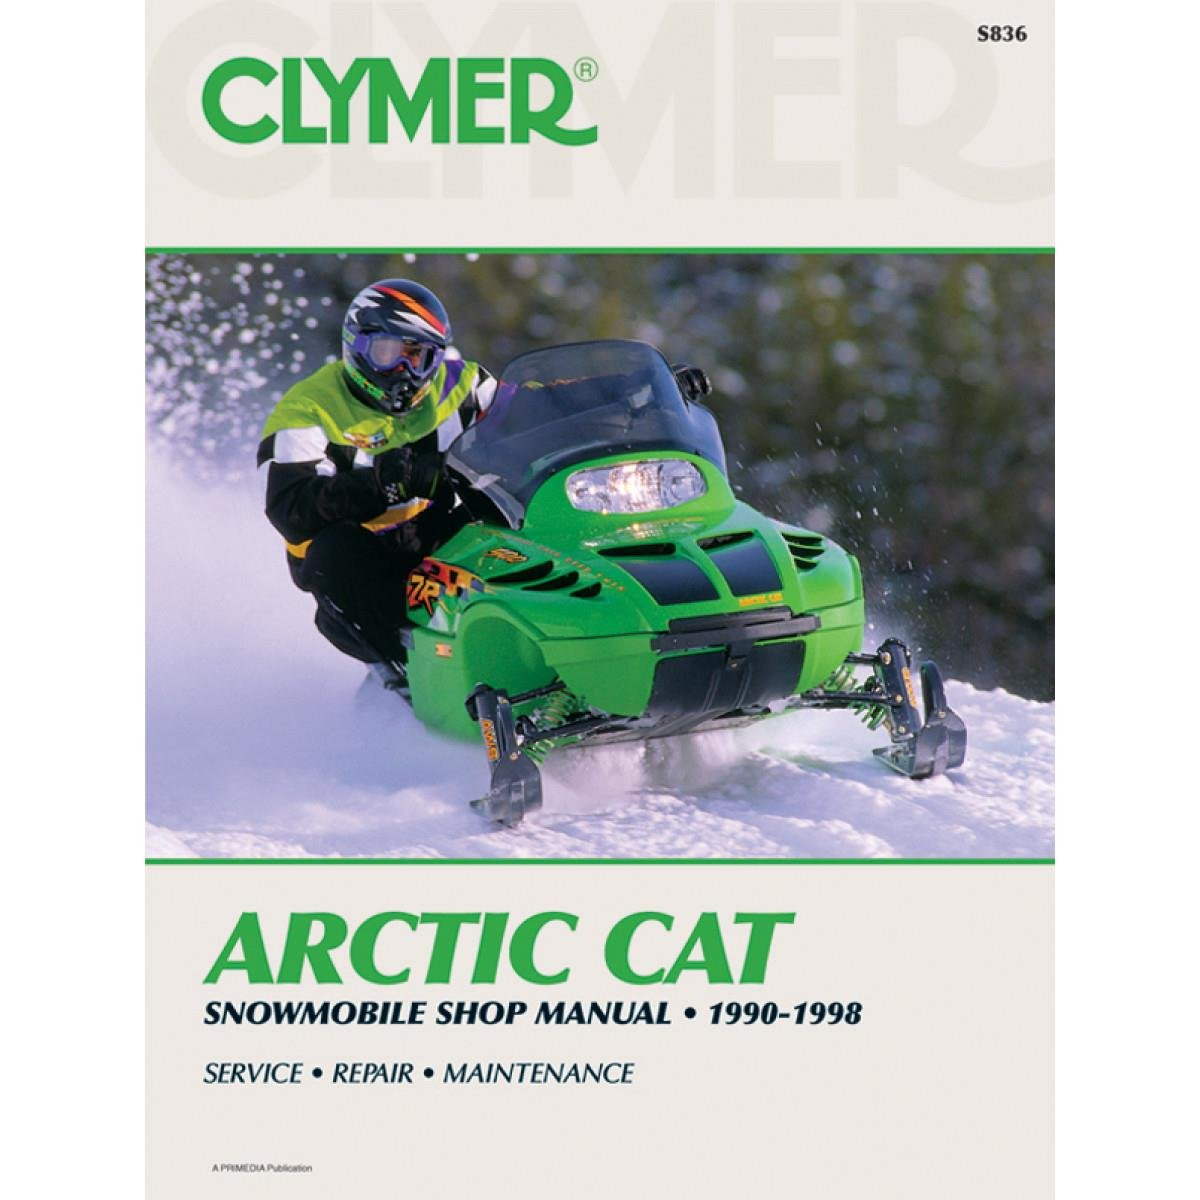 Clymer Artic Cat Snowmobile 1990 1998 53007 Home Ski Doo Wiring Diagram Online Audio Theater